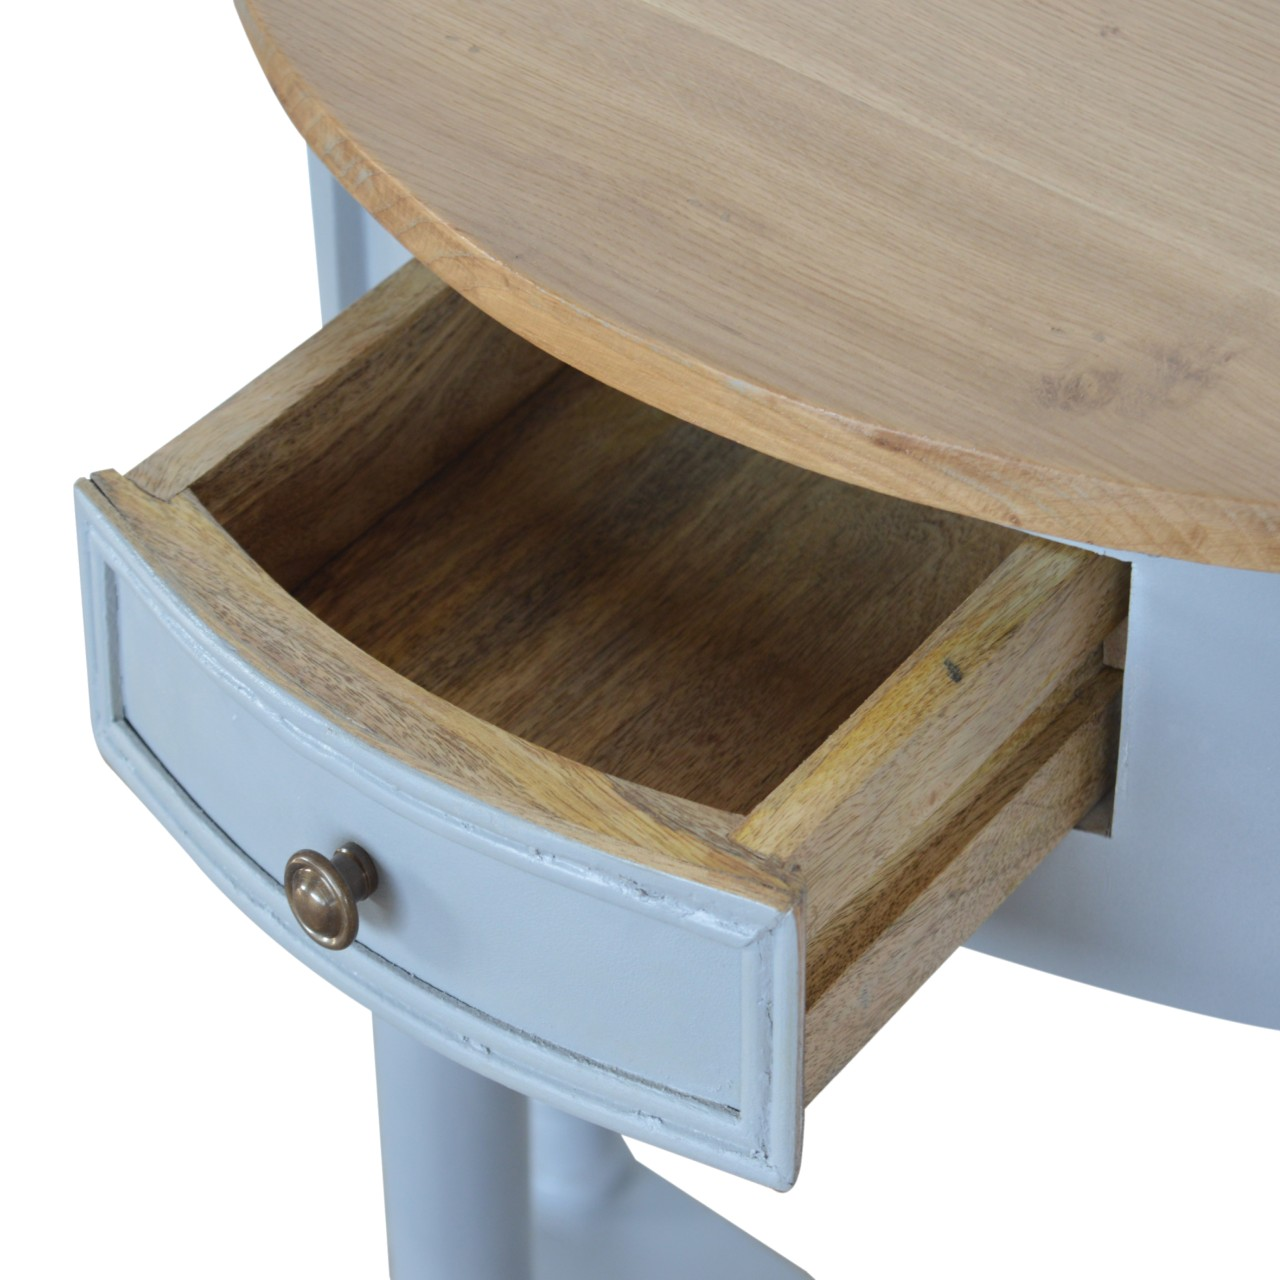 IN505-Grey-Painted-1-Drawer-Serpentine-Table-with-Turned-Legs-5